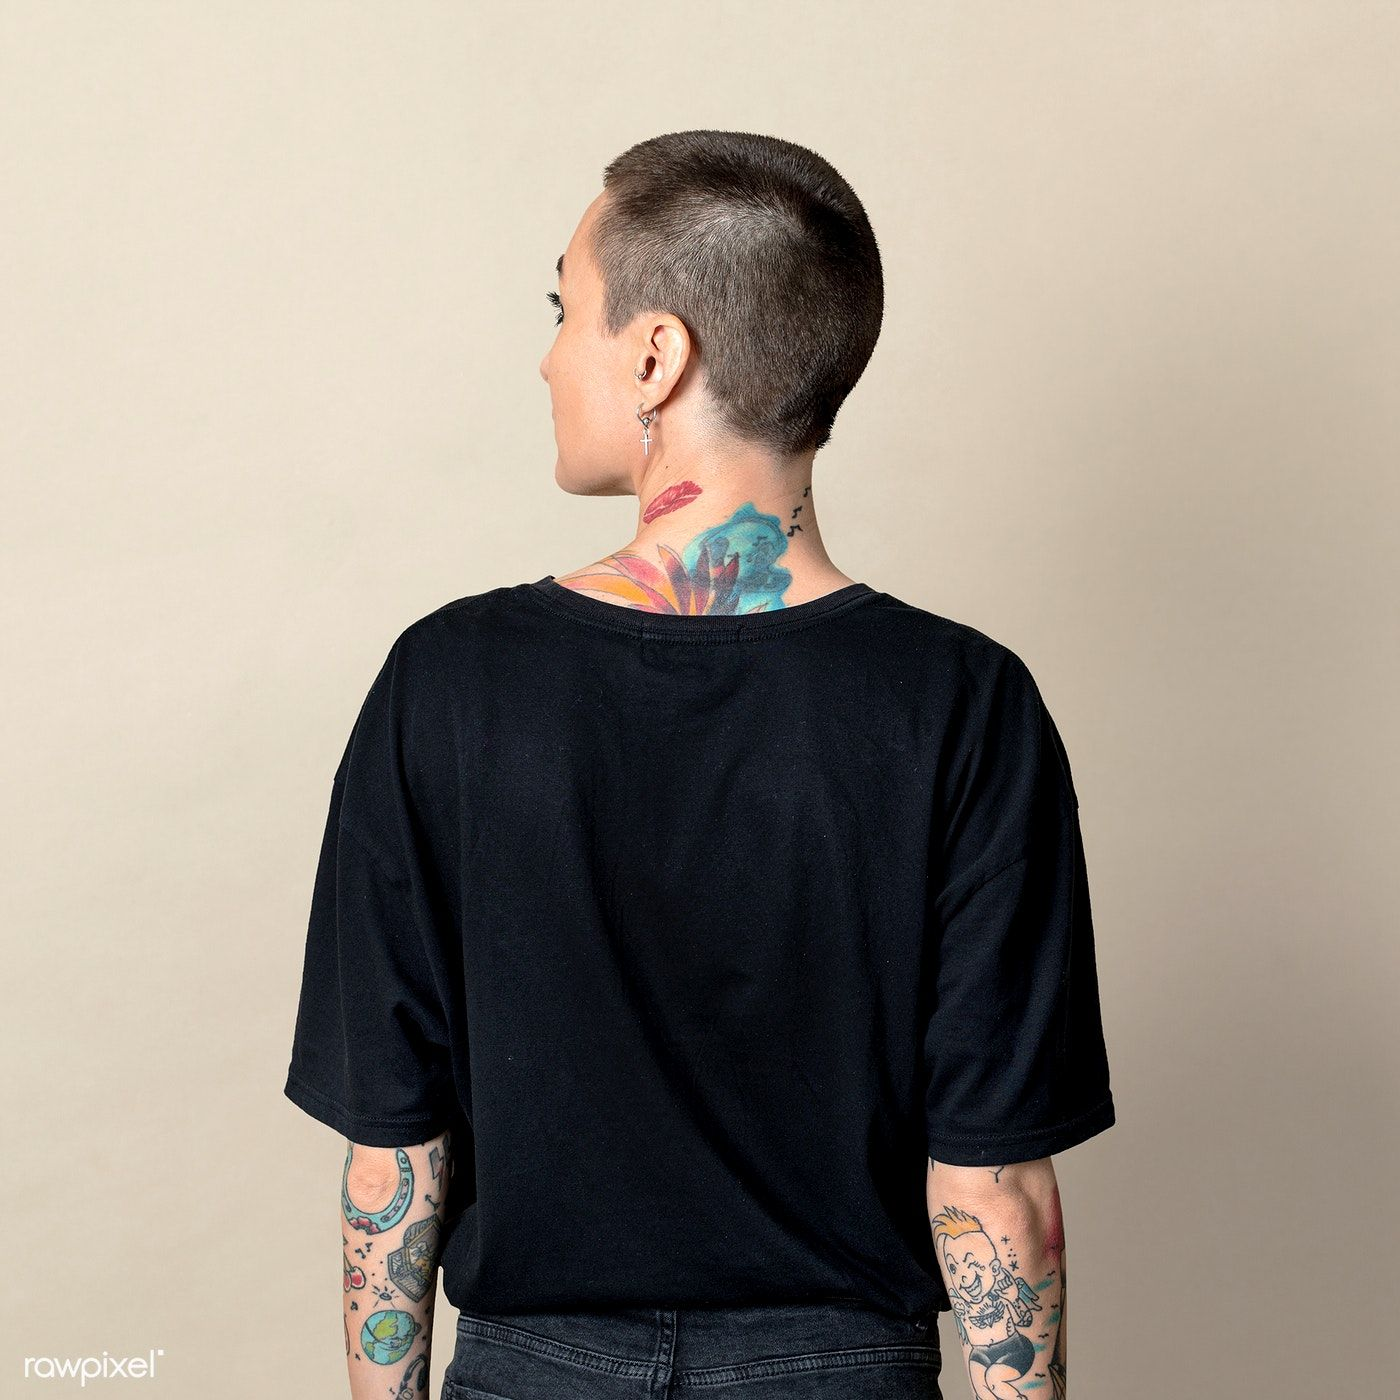 Download Download Premium Psd Of Model With Tattoo In Black T Shirt Mockup 2052668 Shirt Mockup Black Tshirt Tshirt Mockup